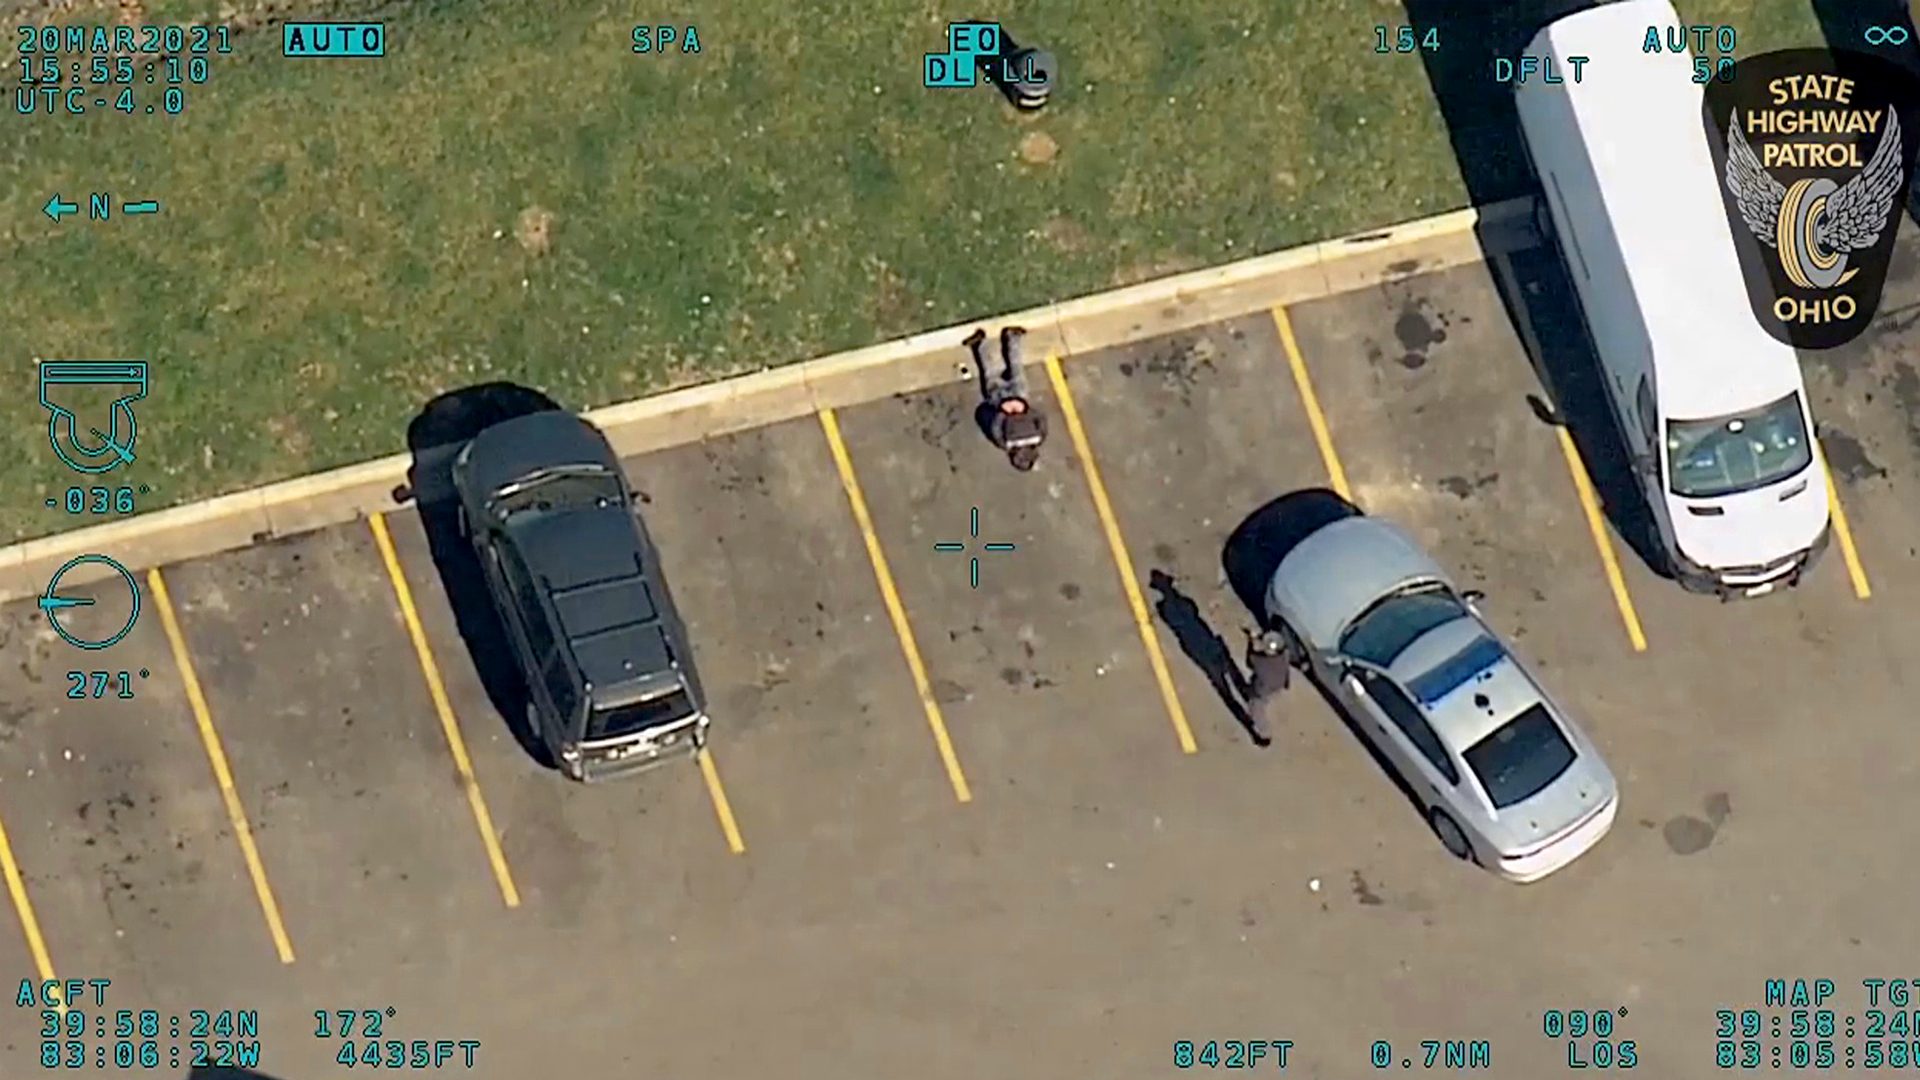 VIDEO: Fleeing Suspect Arrested After Abandoning Stolen Vehicle And Casually Walking Away On Foot